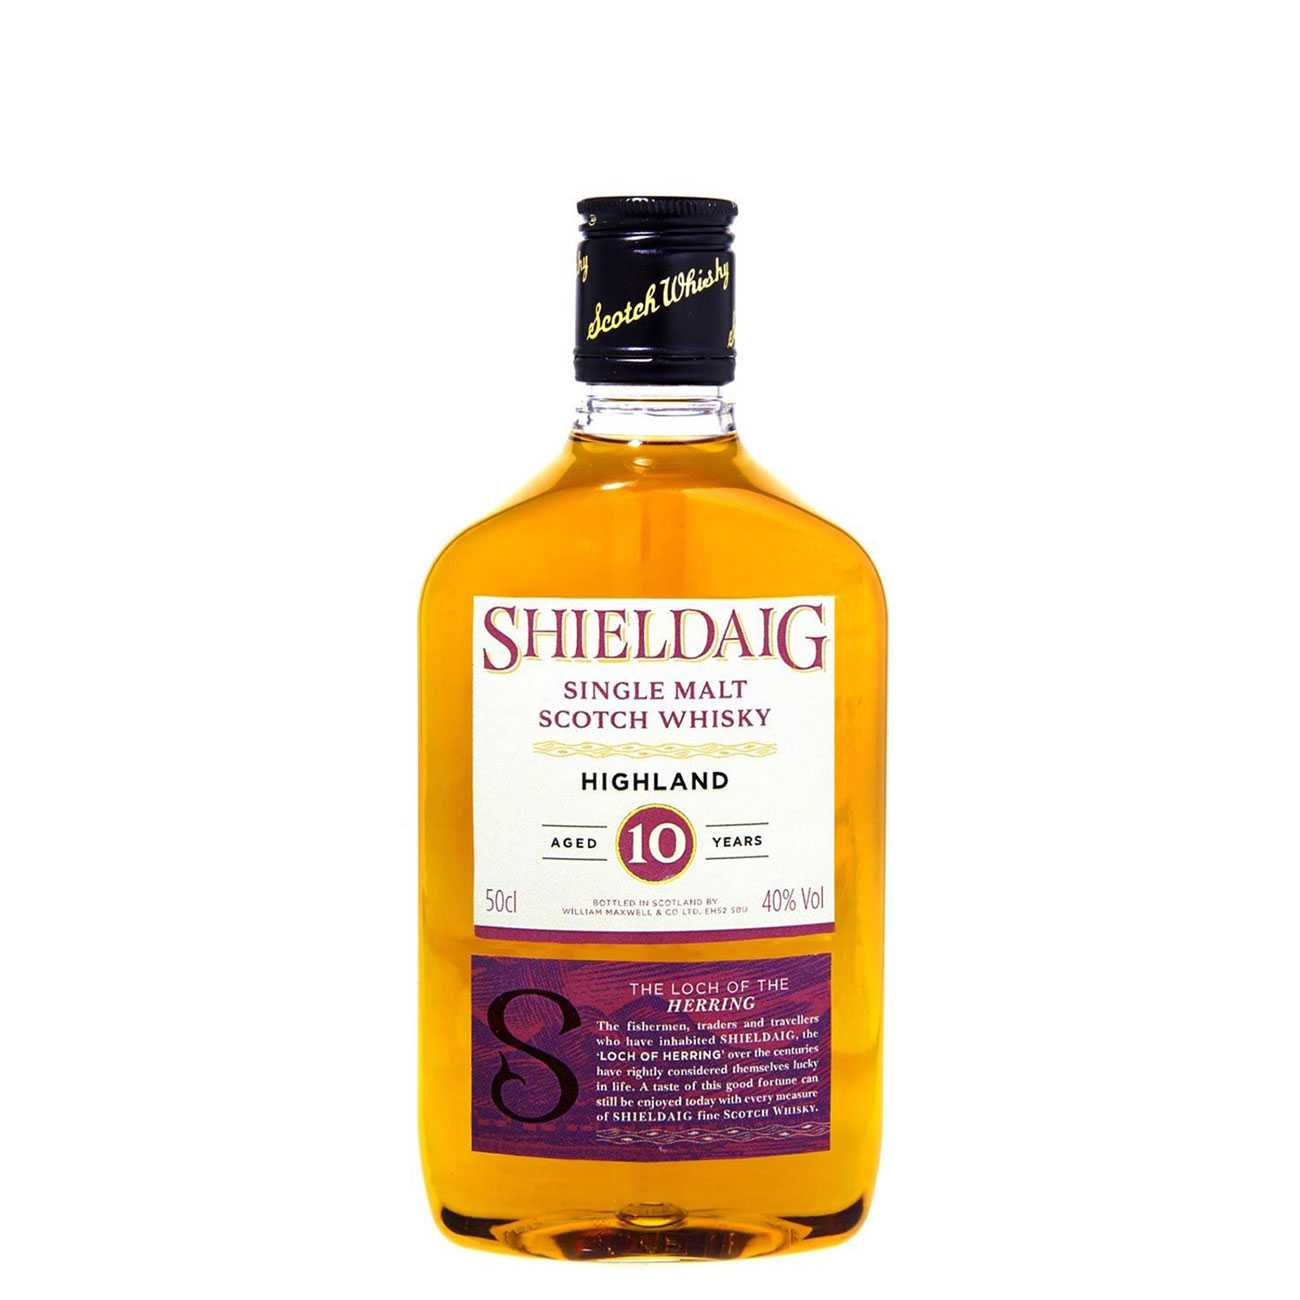 Whisky scotian, 10Y 500 ML, Shieldaig